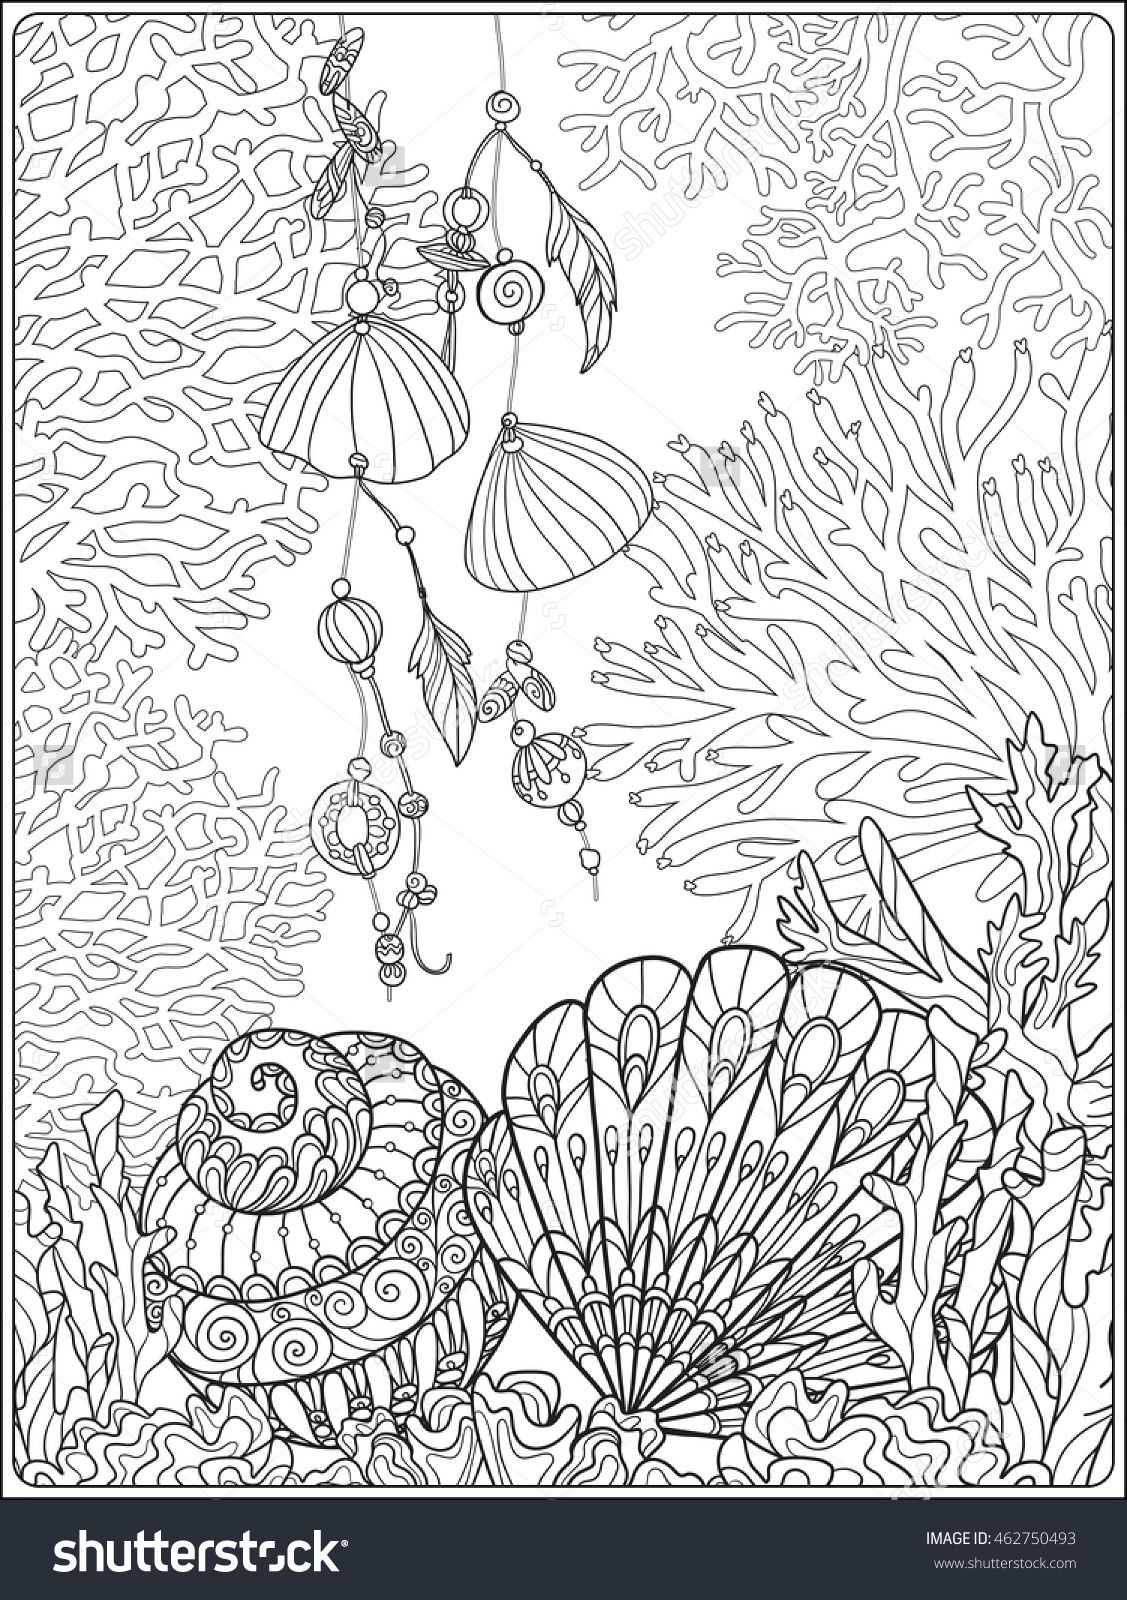 coral, fish and sea shells coloring page for adults ...